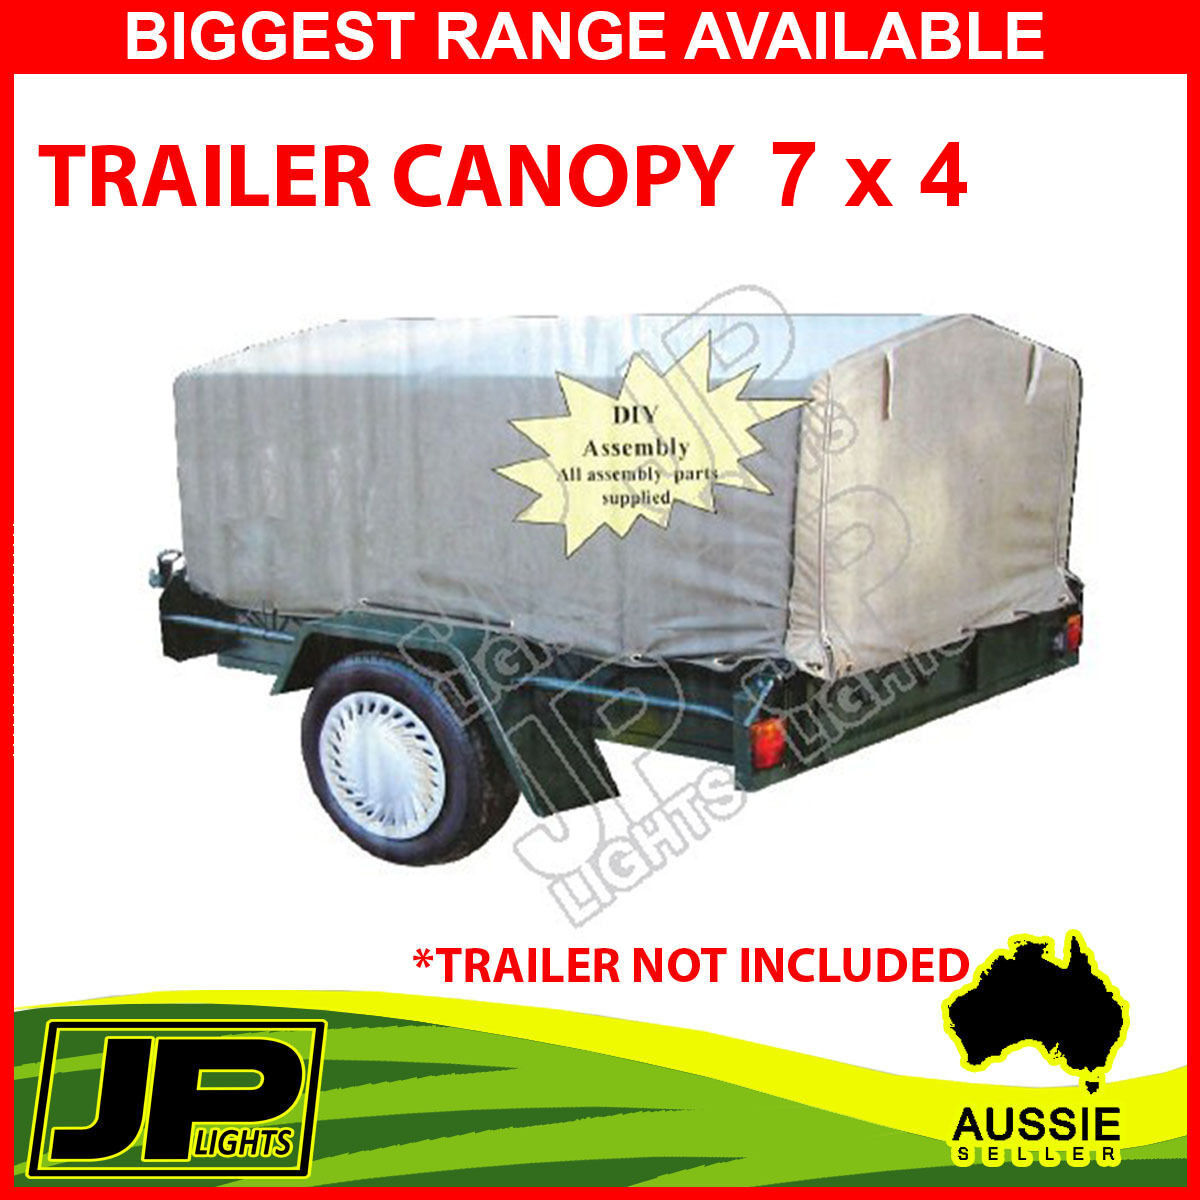 1x TRAILER CANOPY CANVAS SUIT 7 X 4 BLUE EASY FIT FRAME DURABLE